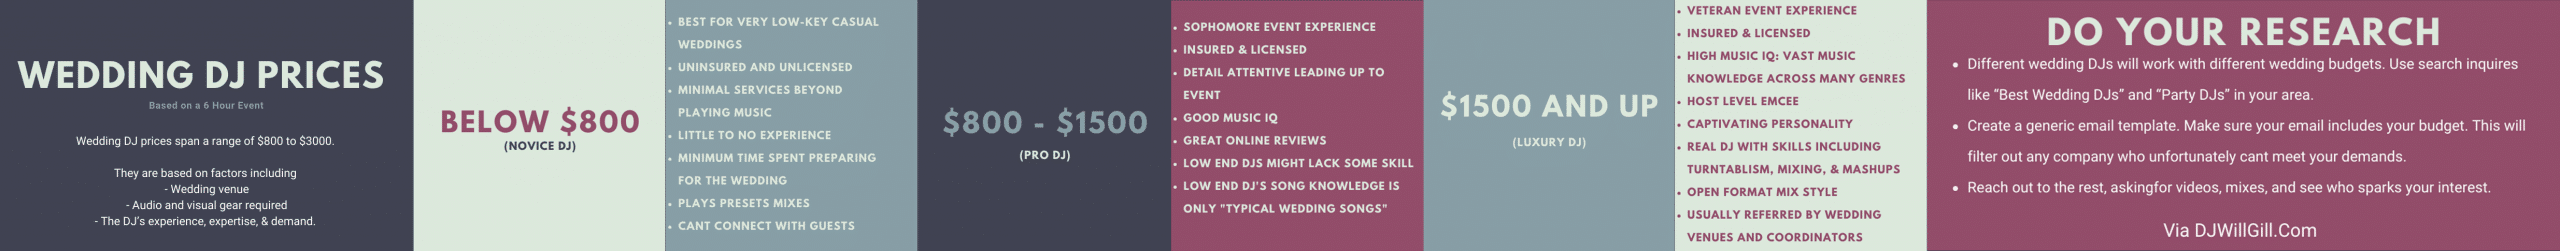 wedding DJ average price tiers